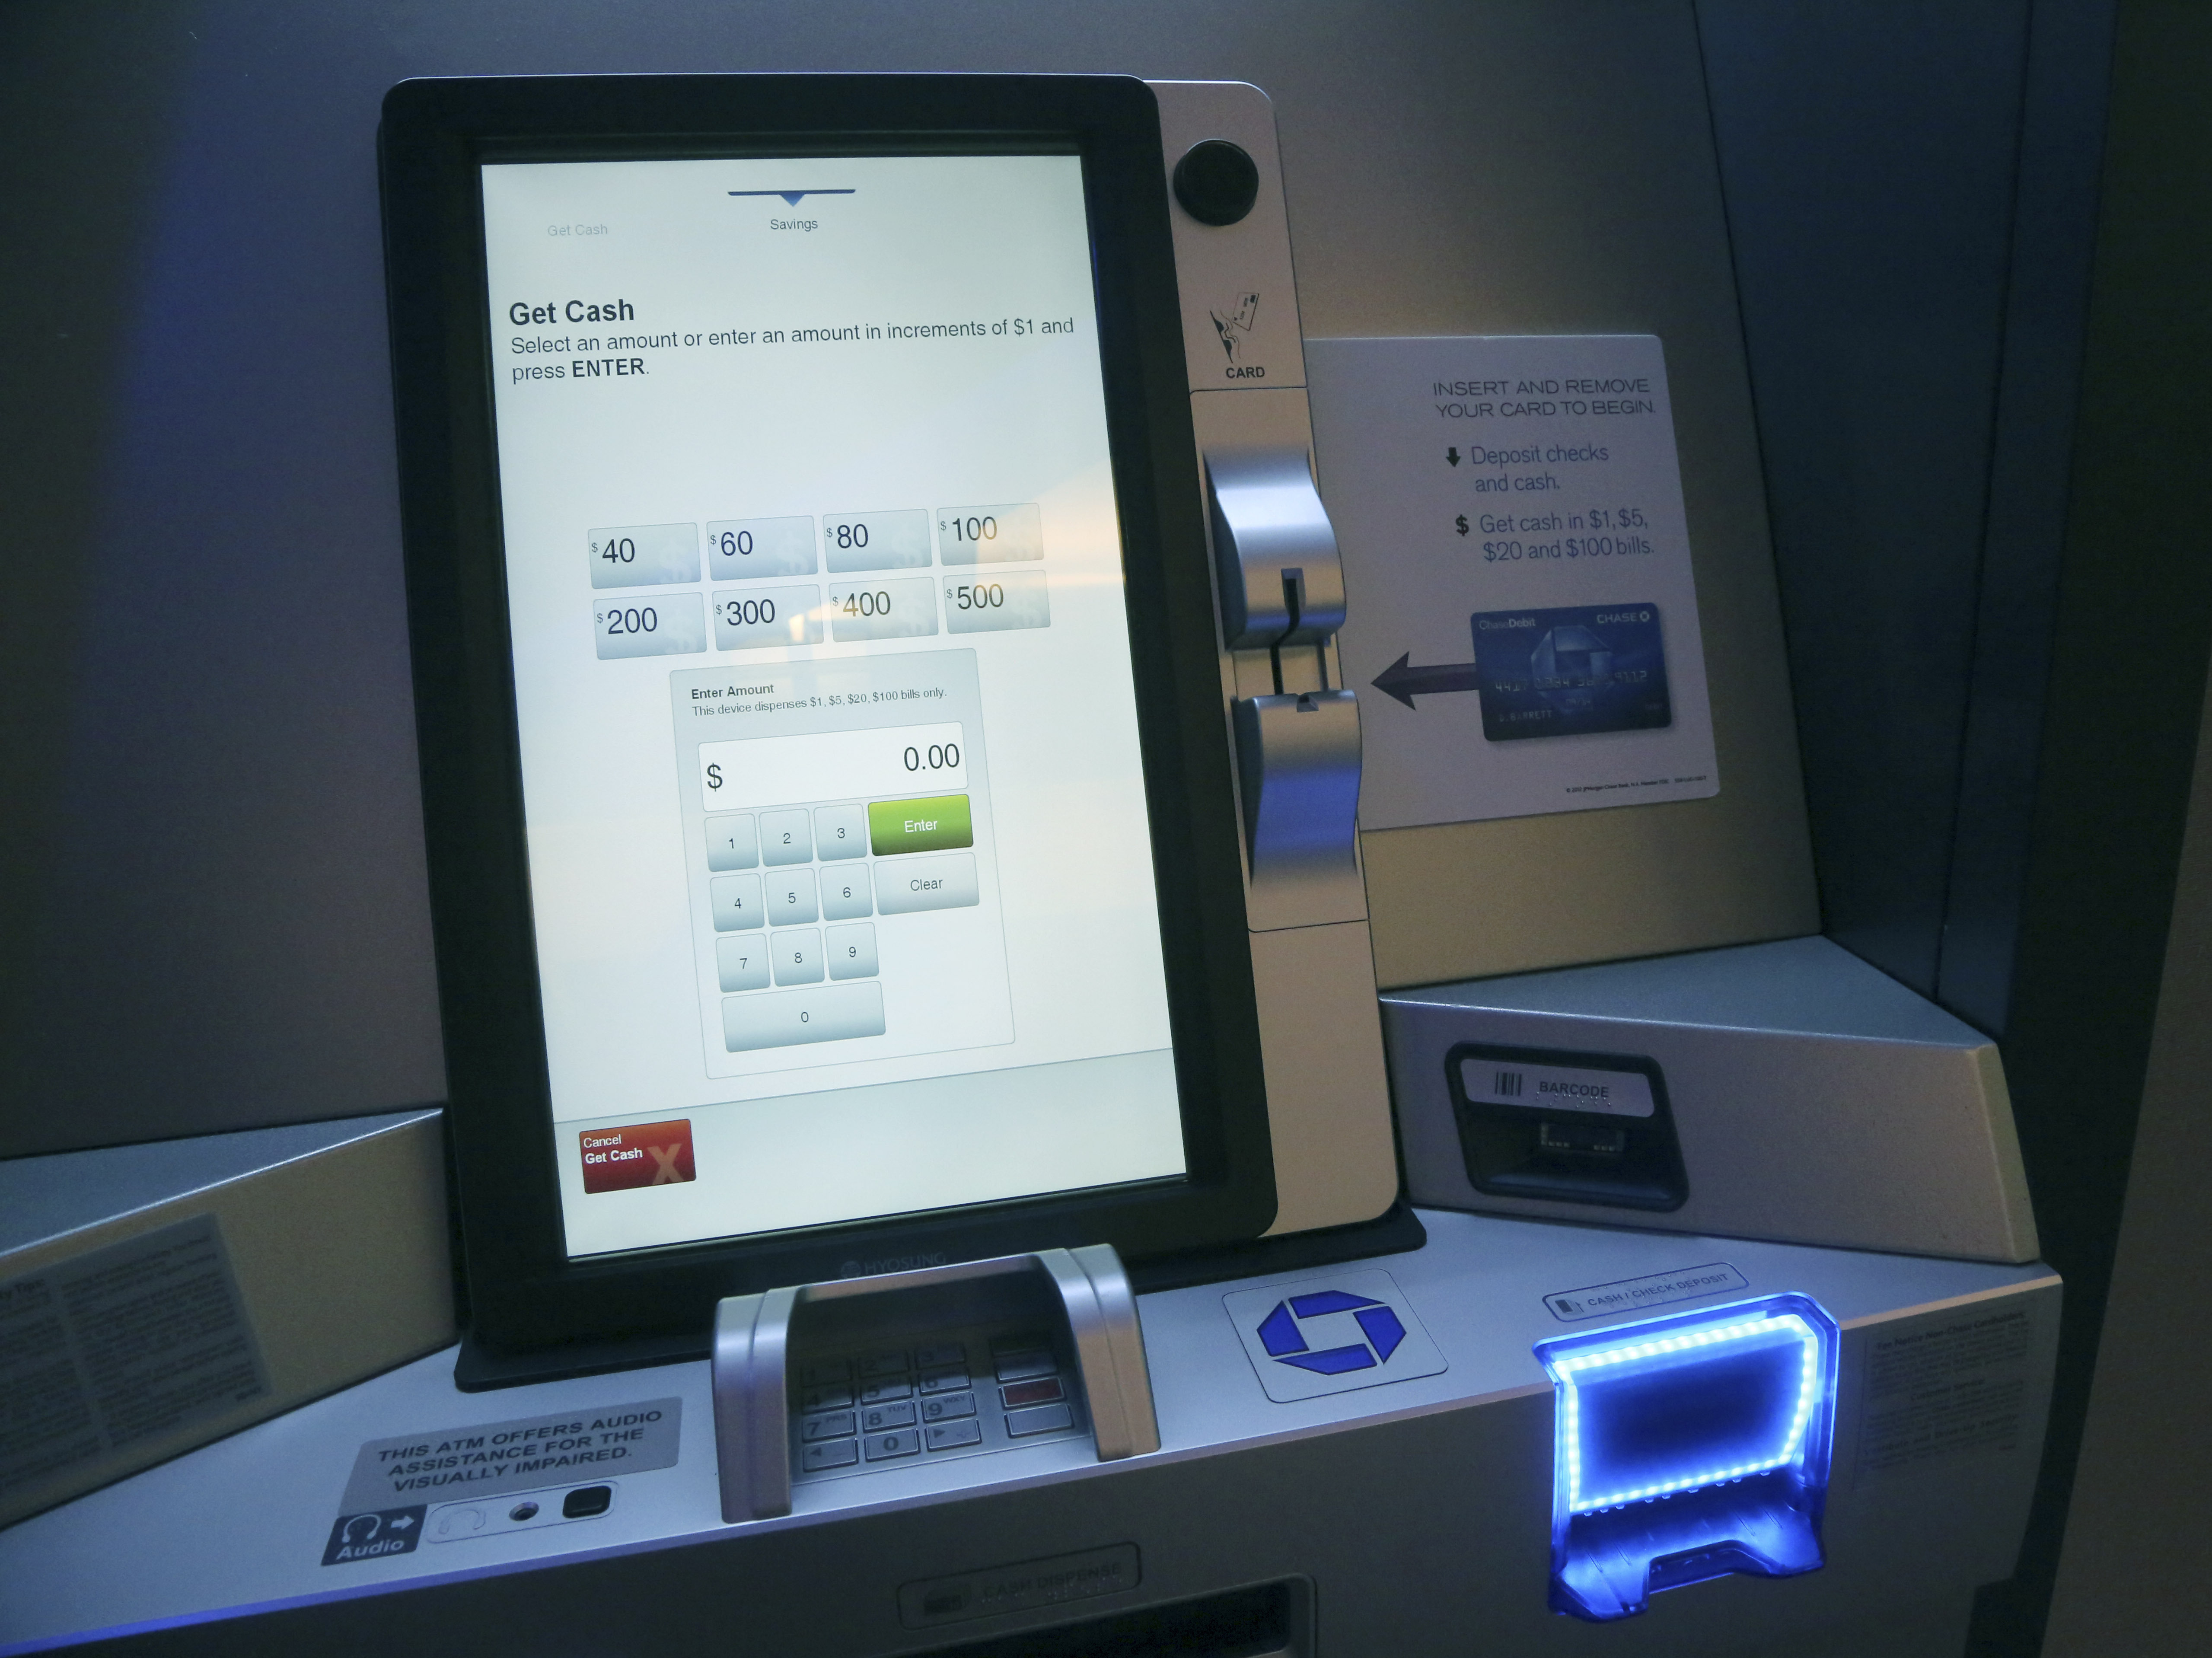 Banks Try To Save Big With 'ATMs Of The Future'